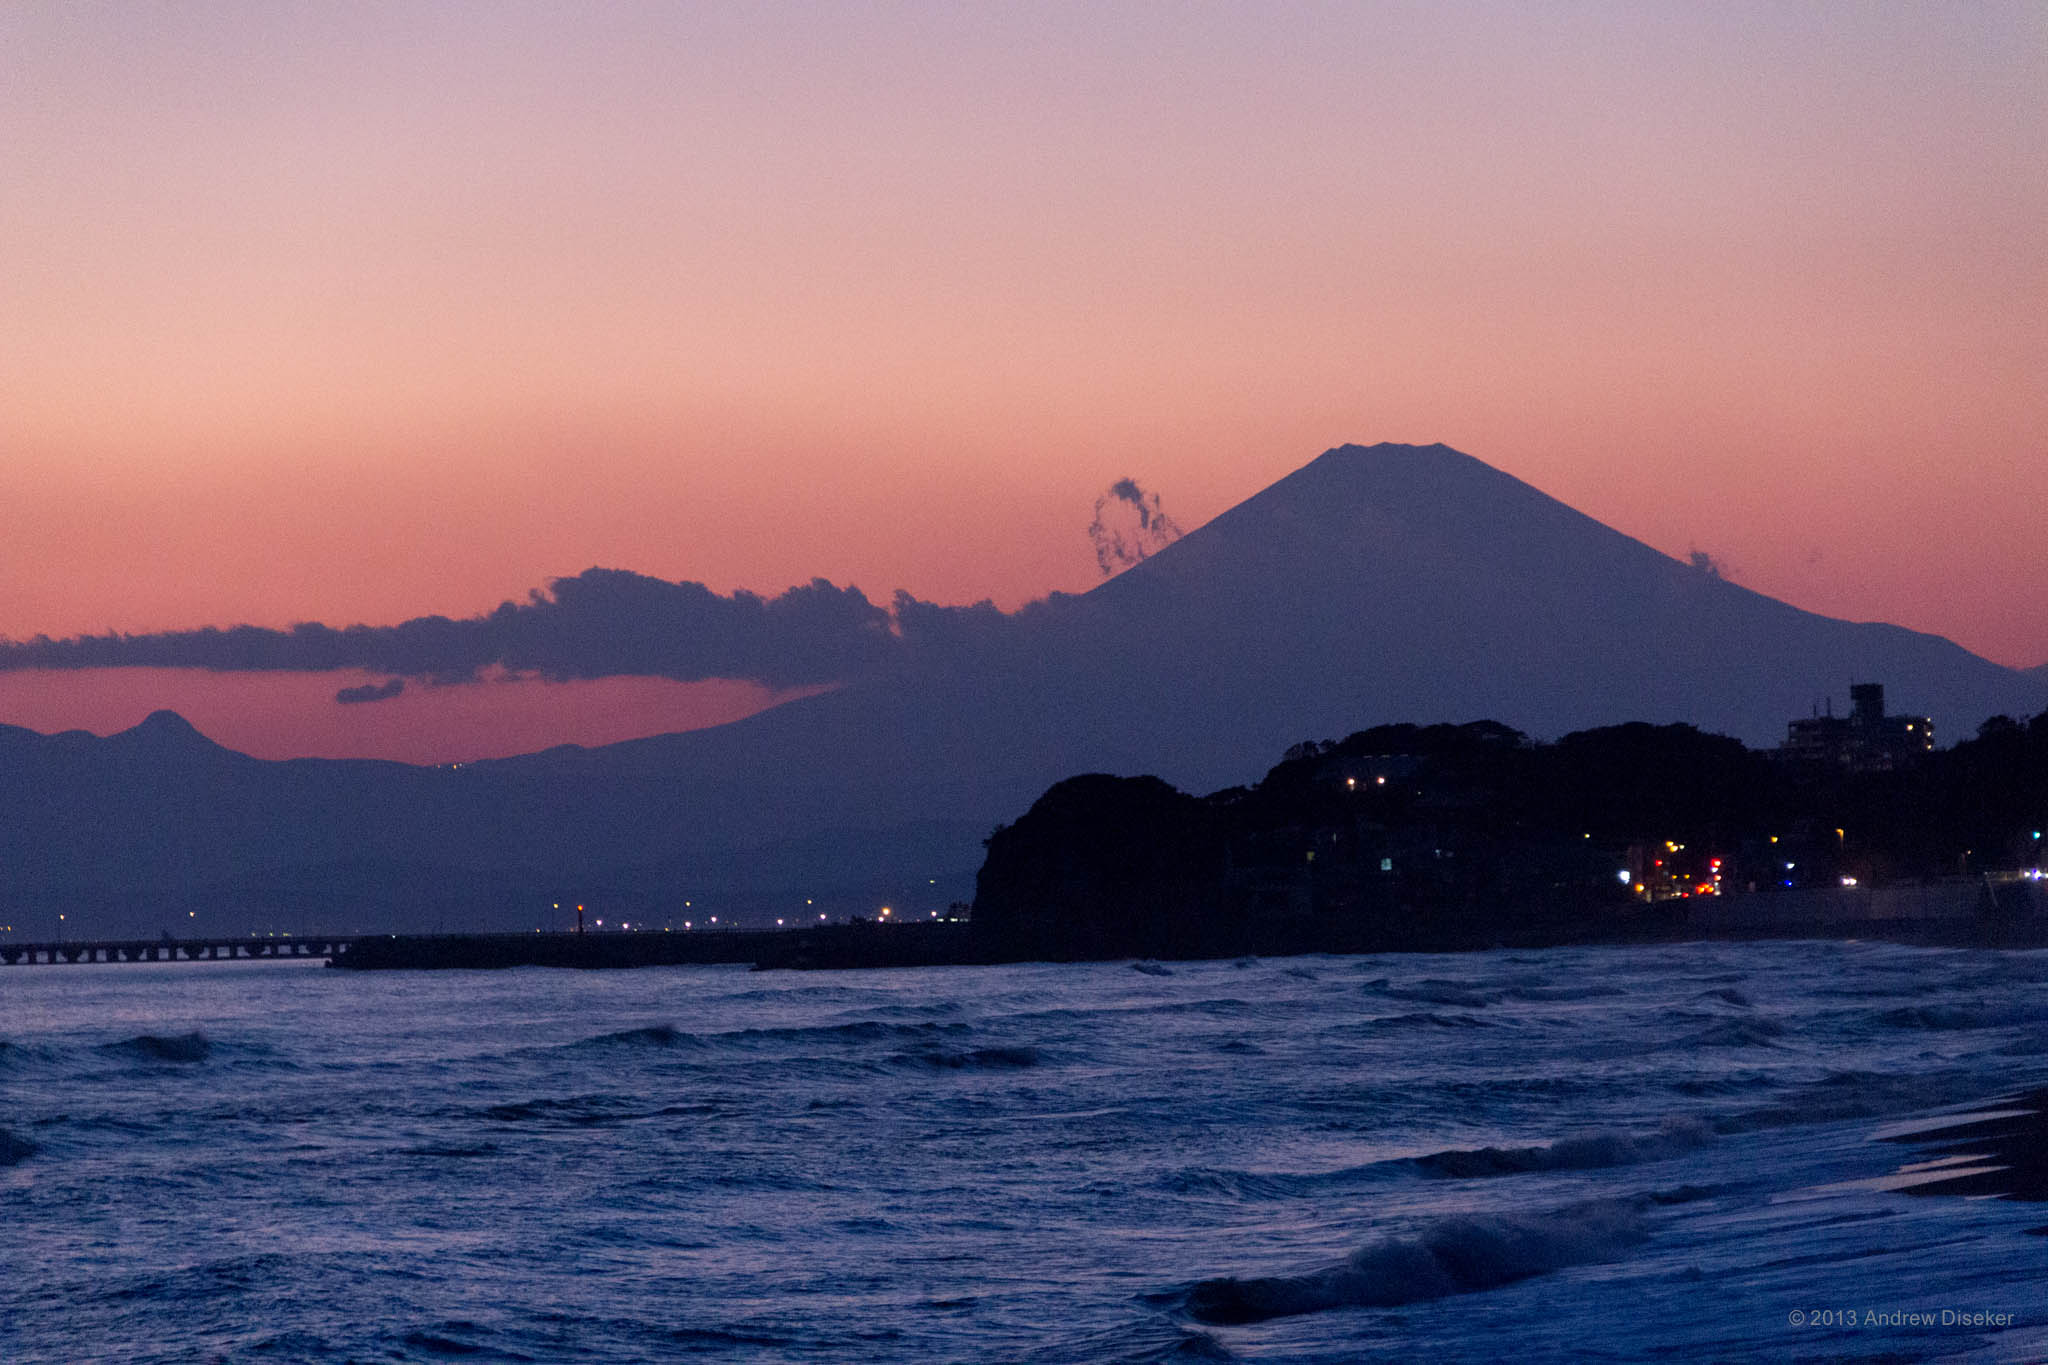 Mount Fuji after sundown